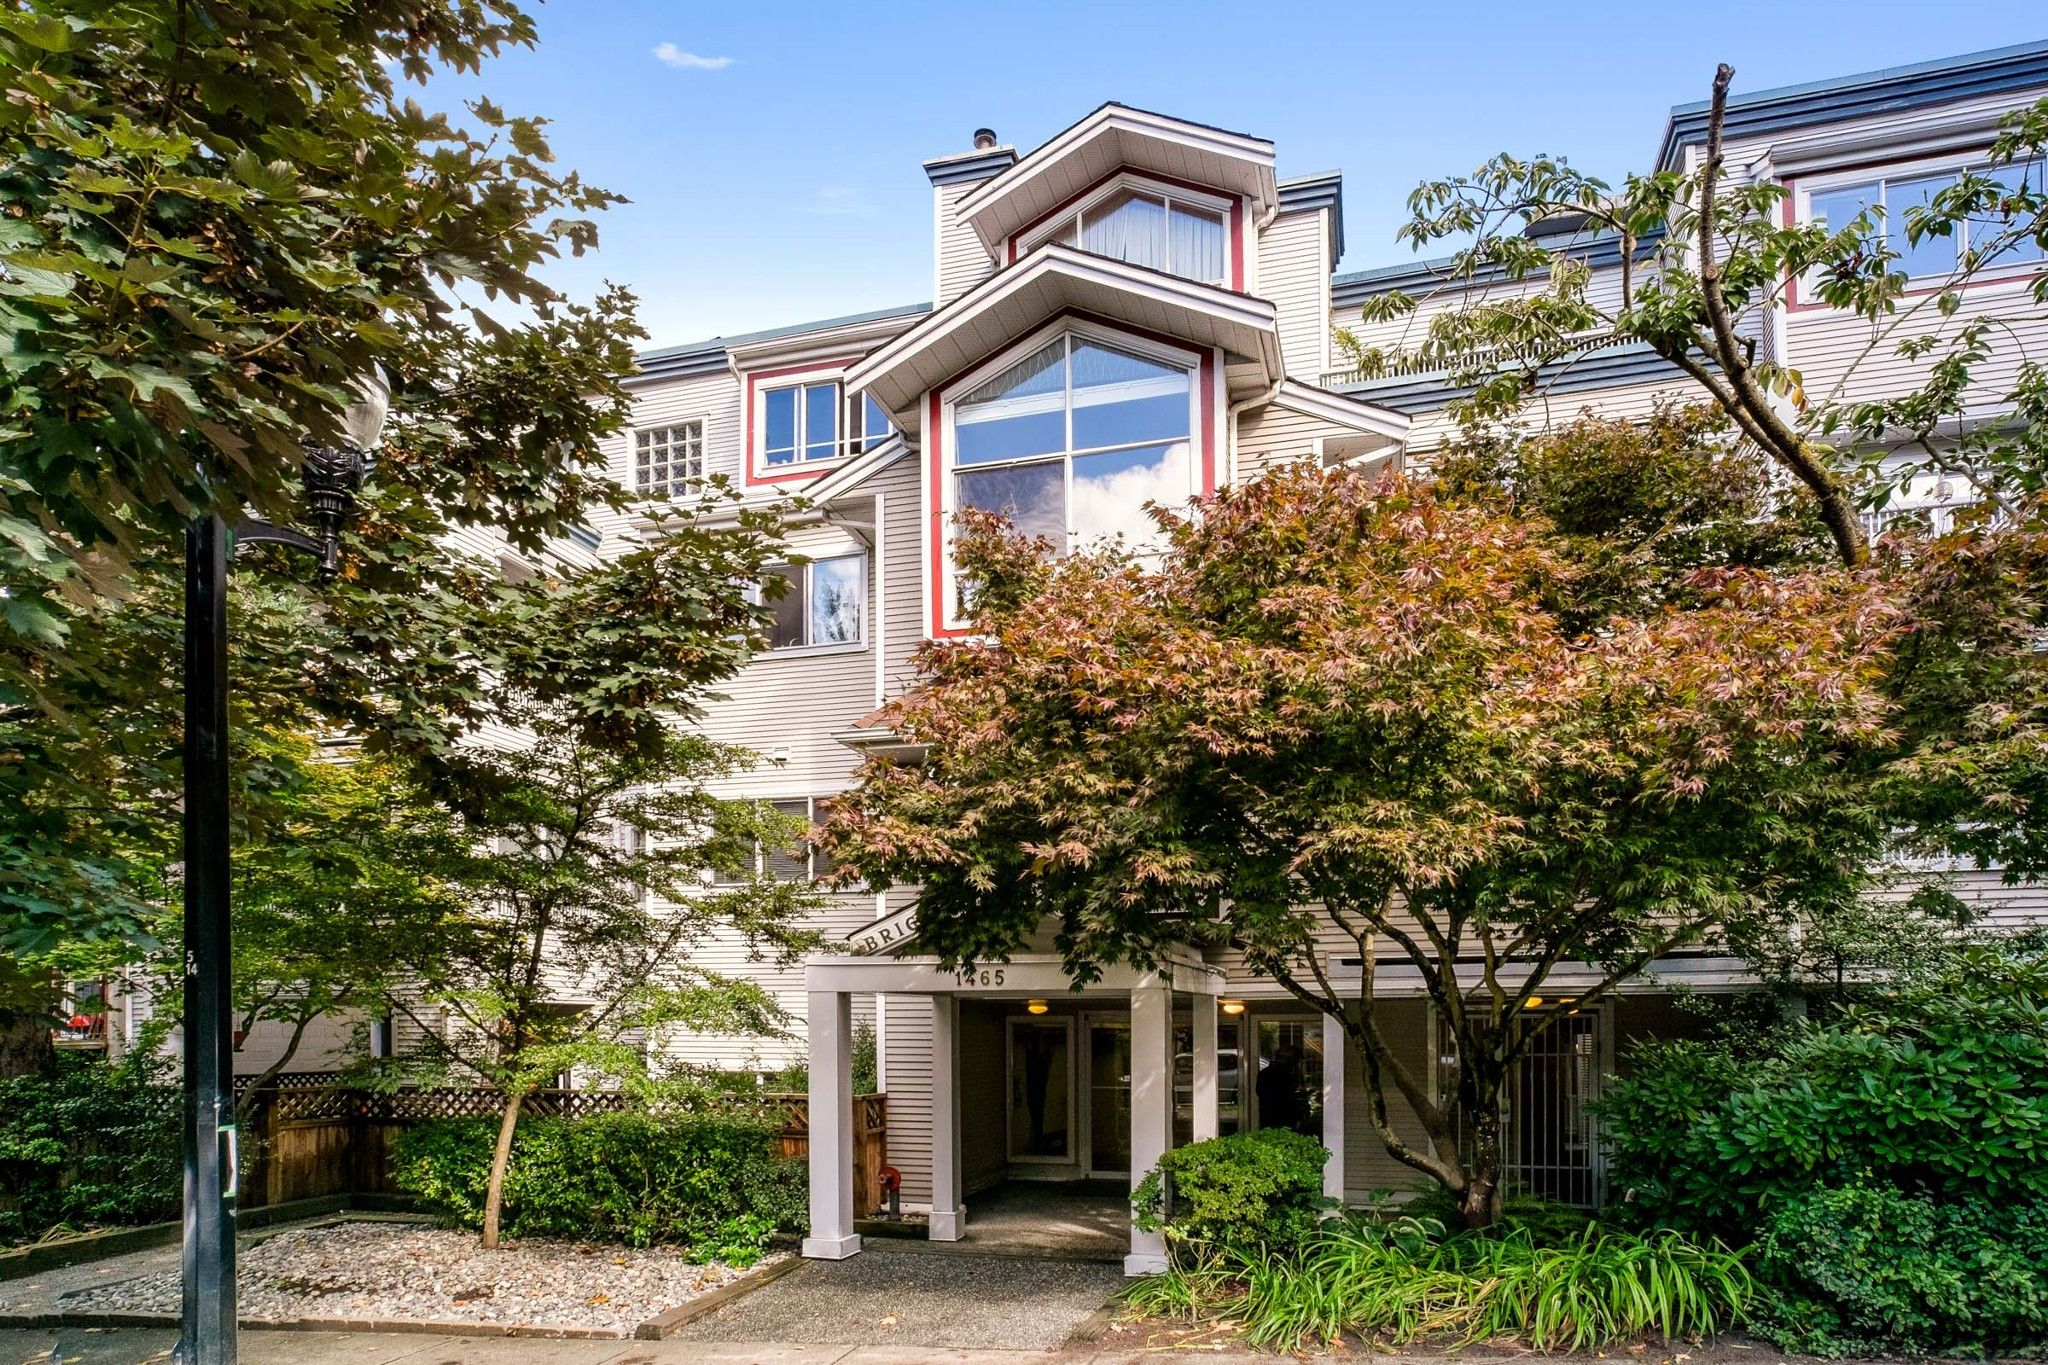 """Main Photo: 103 1465 COMOX Street in Vancouver: West End VW Condo for sale in """"BRIGHTON COURT"""" (Vancouver West)  : MLS®# R2508131"""